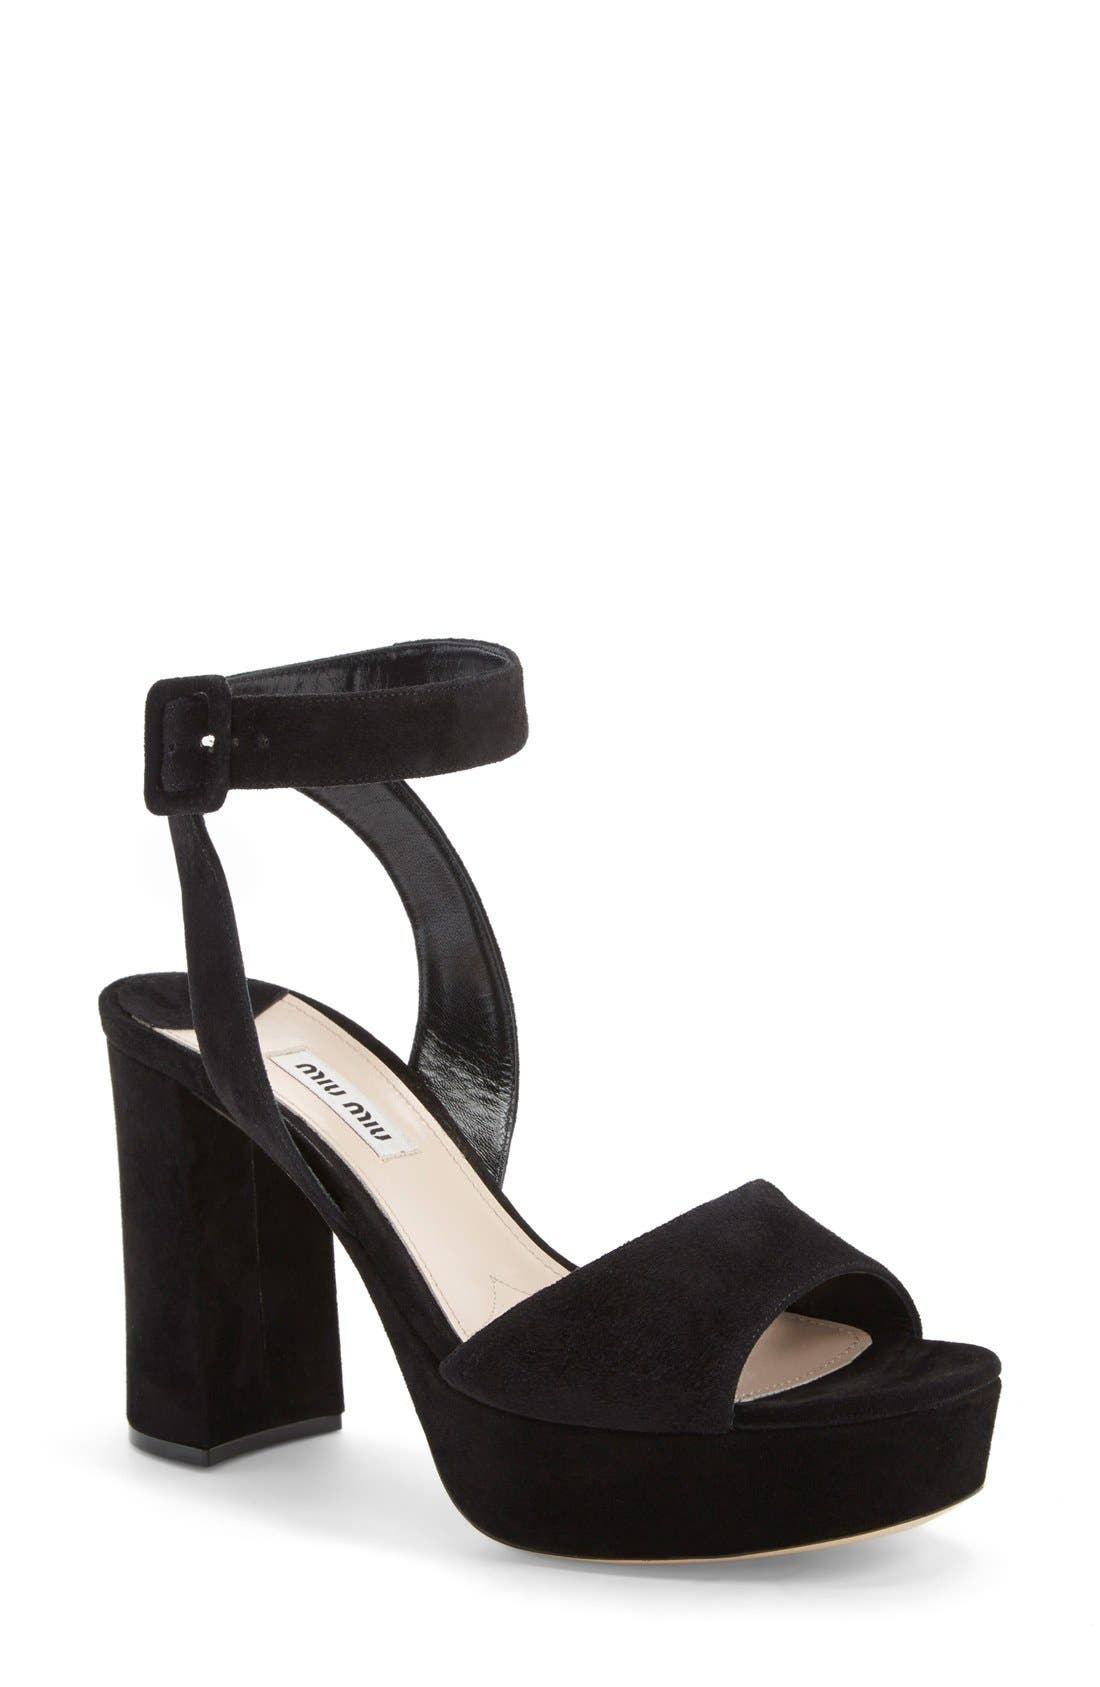 Alternate Image 1 Selected - Miu Miu Block Heel Platform Sandal (Women)